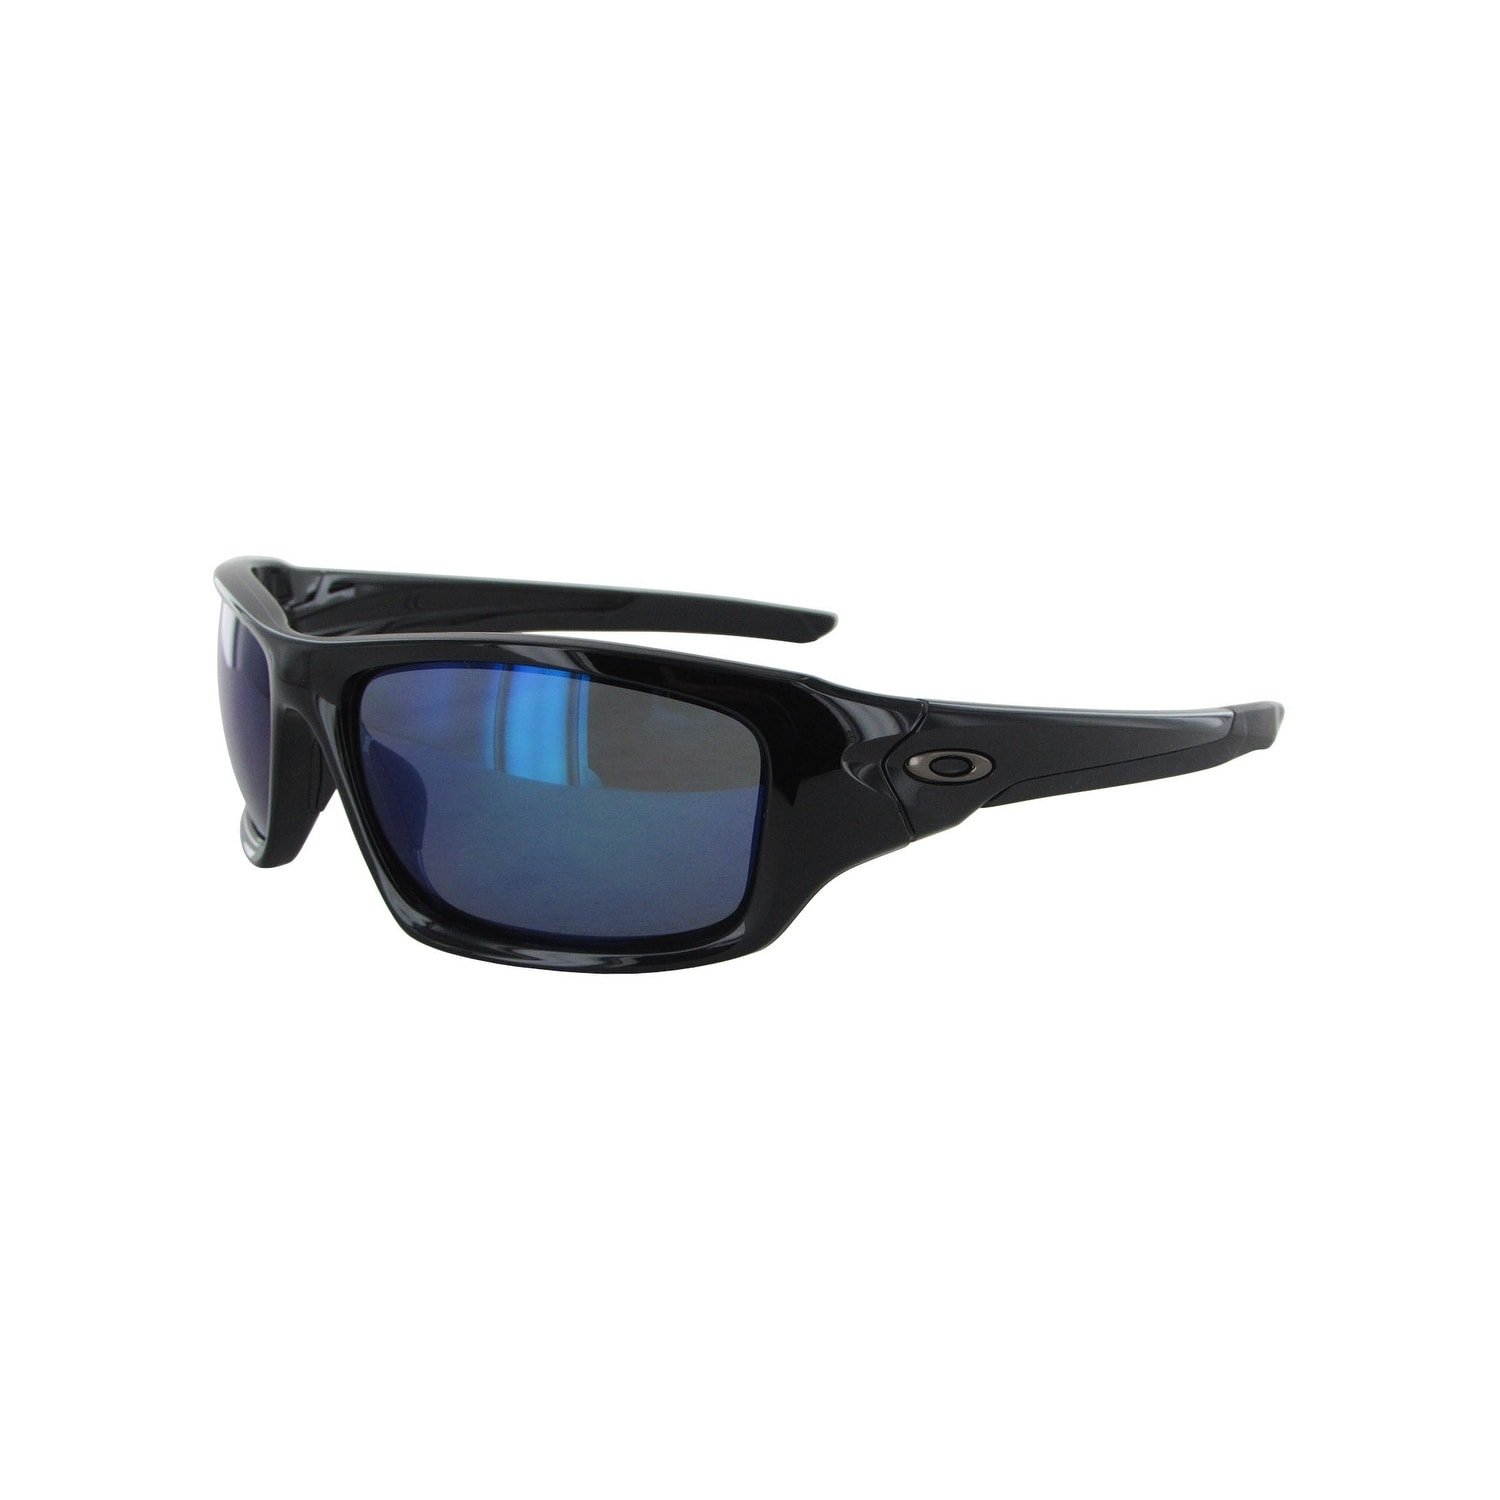 0a2d7fd500c55 Shop Oakley Mens 9236  Valve  Polarized Sporty Sunglasses - Free Shipping  Today - Overstock - 27973985